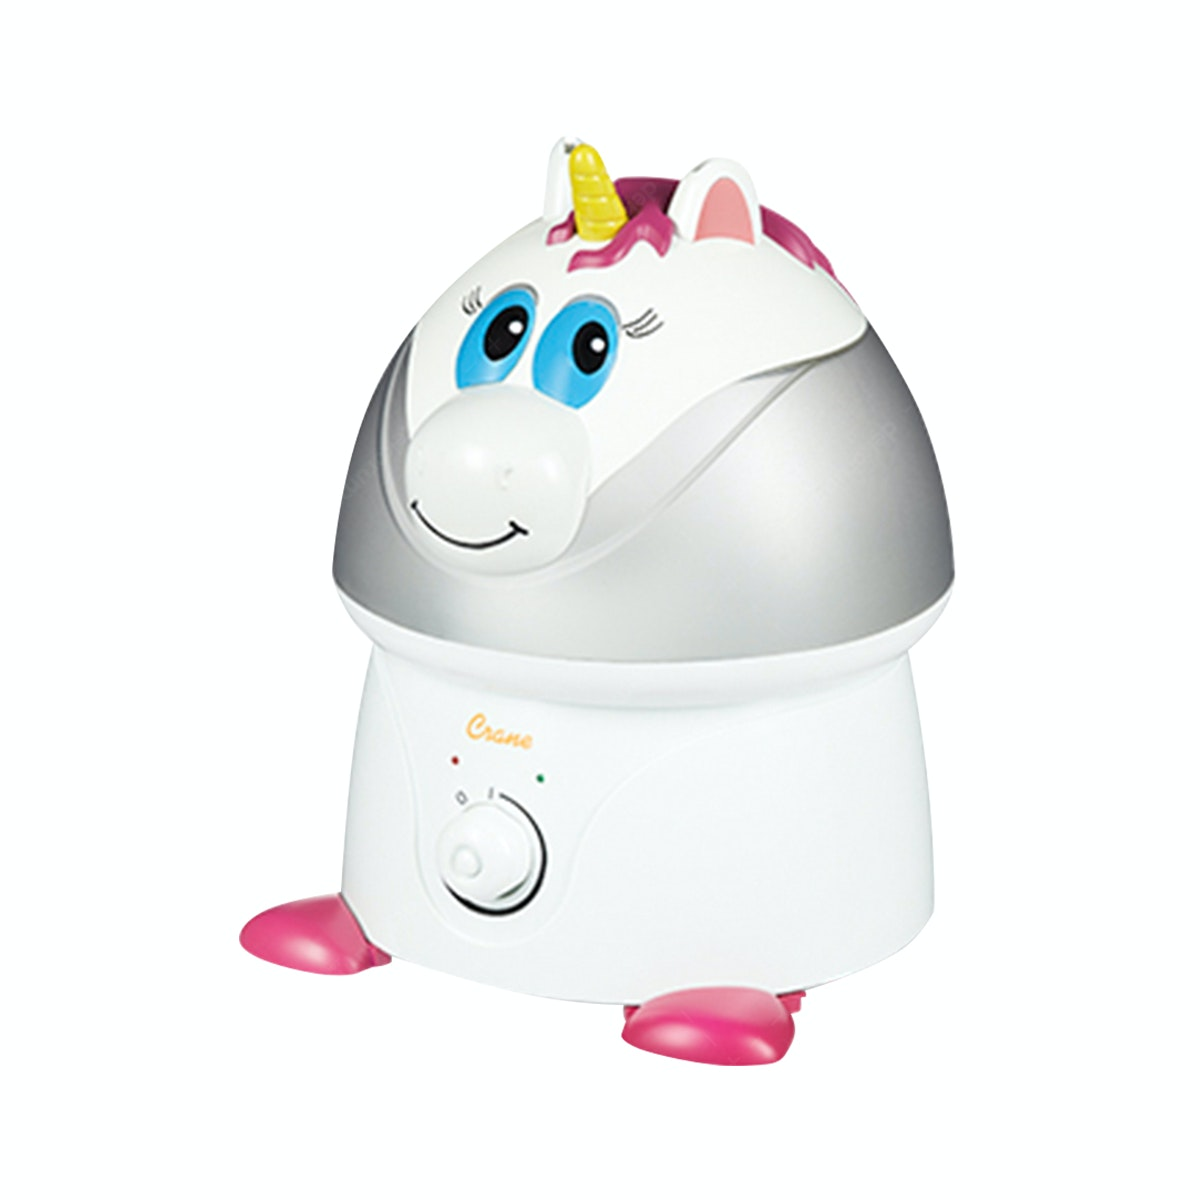 Crane Adorables Unicorn Cool Mist Humidifier